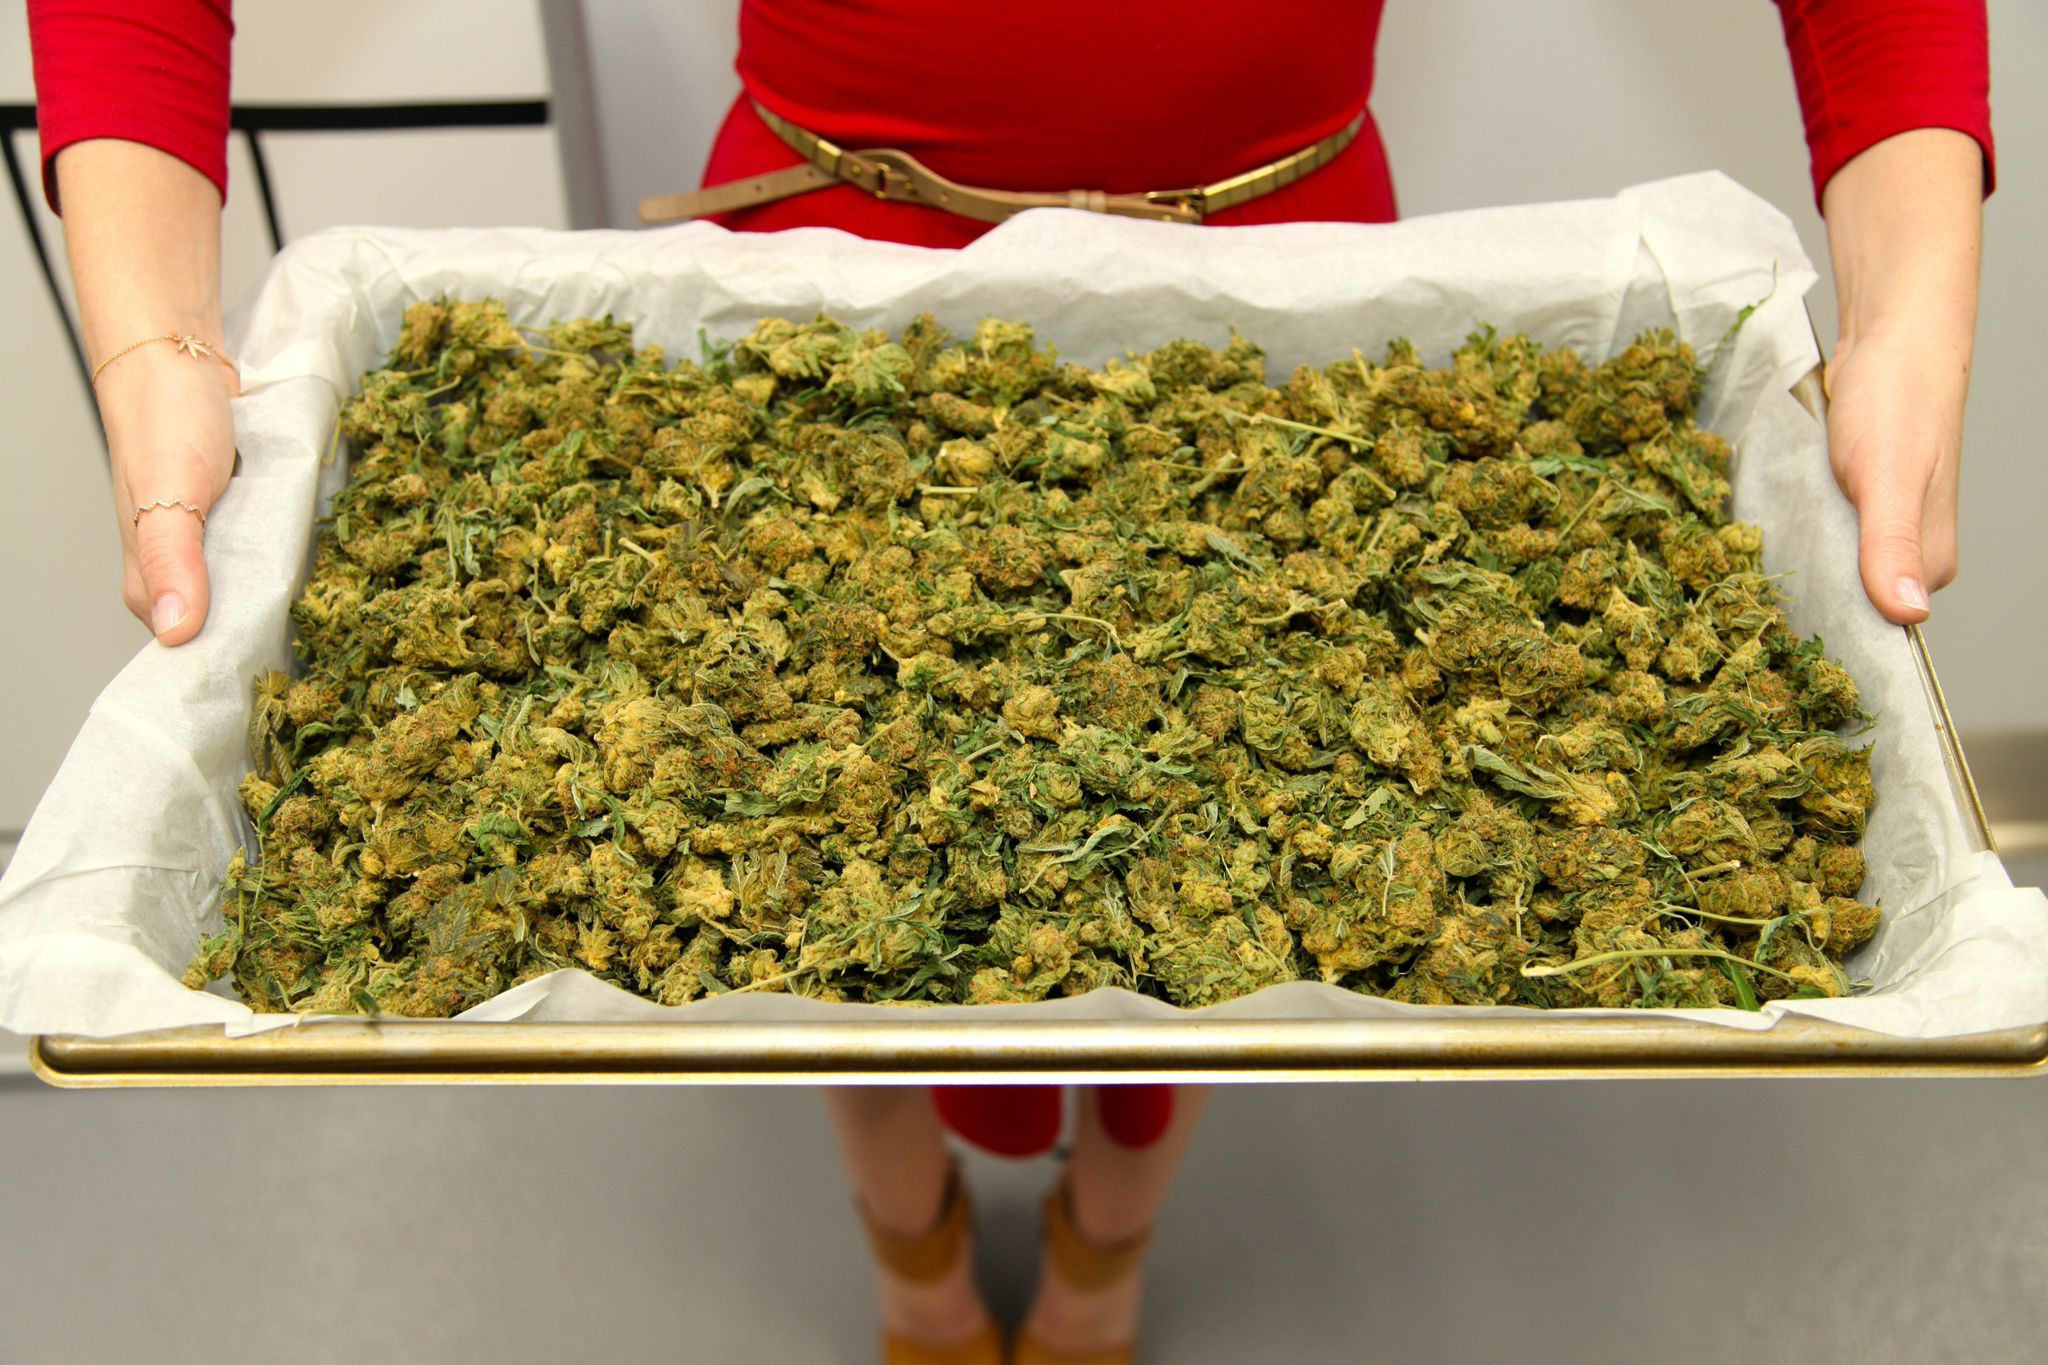 Founder & CEO, Julie Berliner, holds tray of decarboxylated cannabis buds.